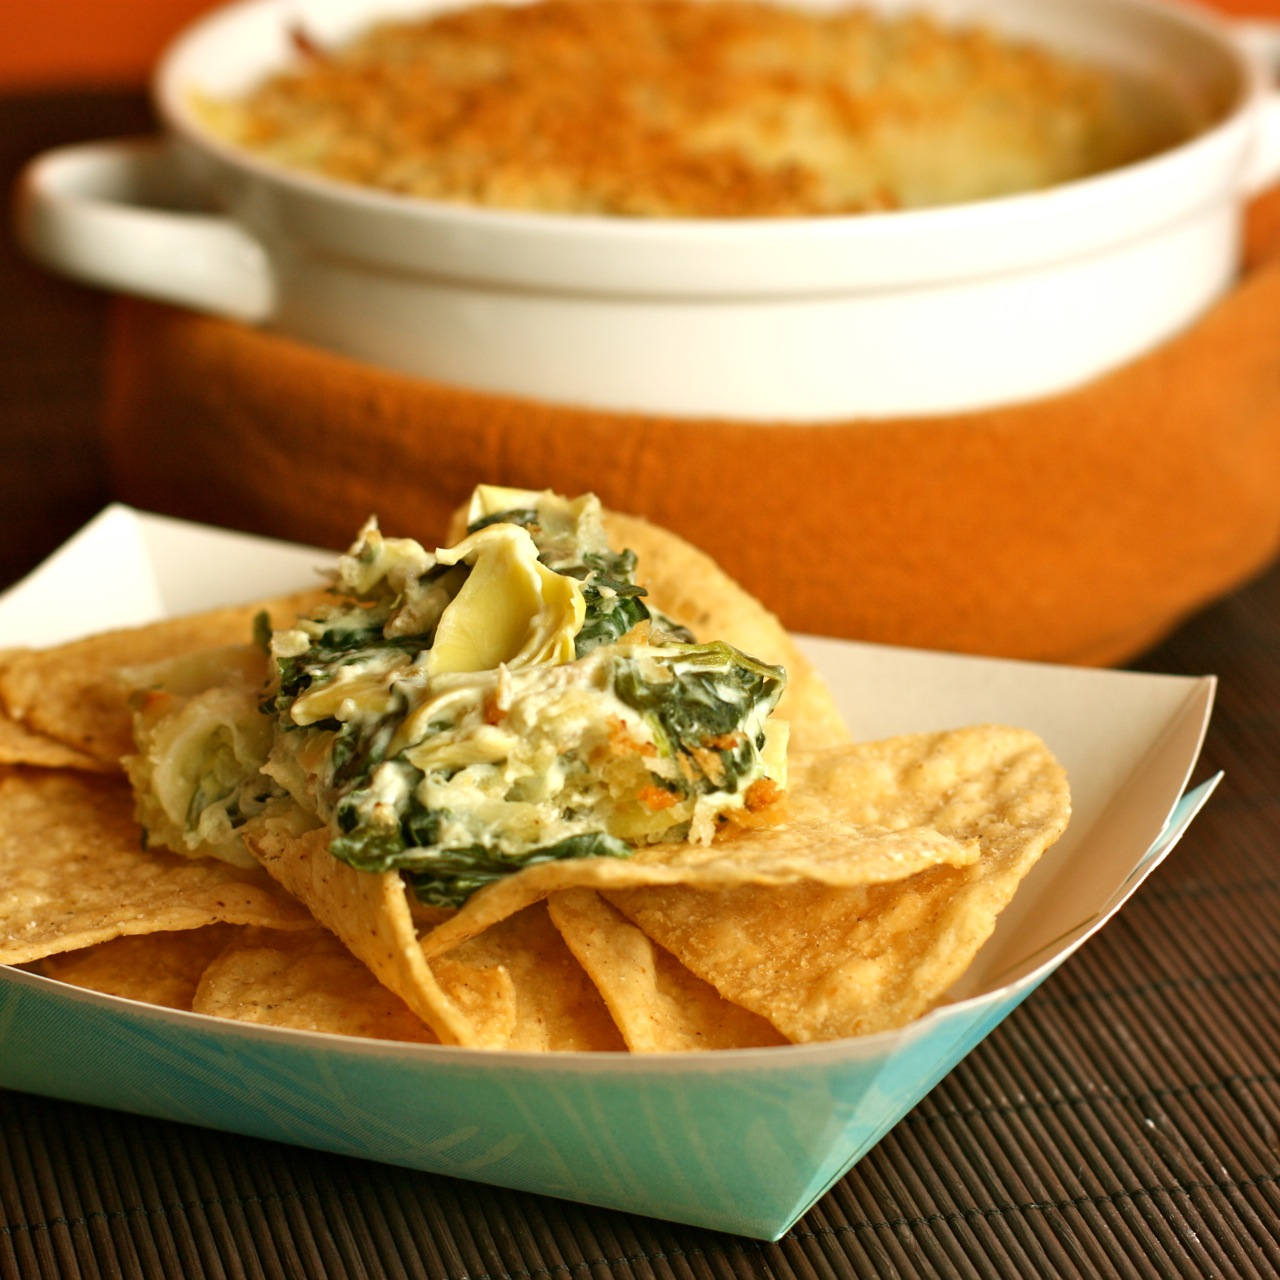 football food: spinach and artichoke dip | daisy's world